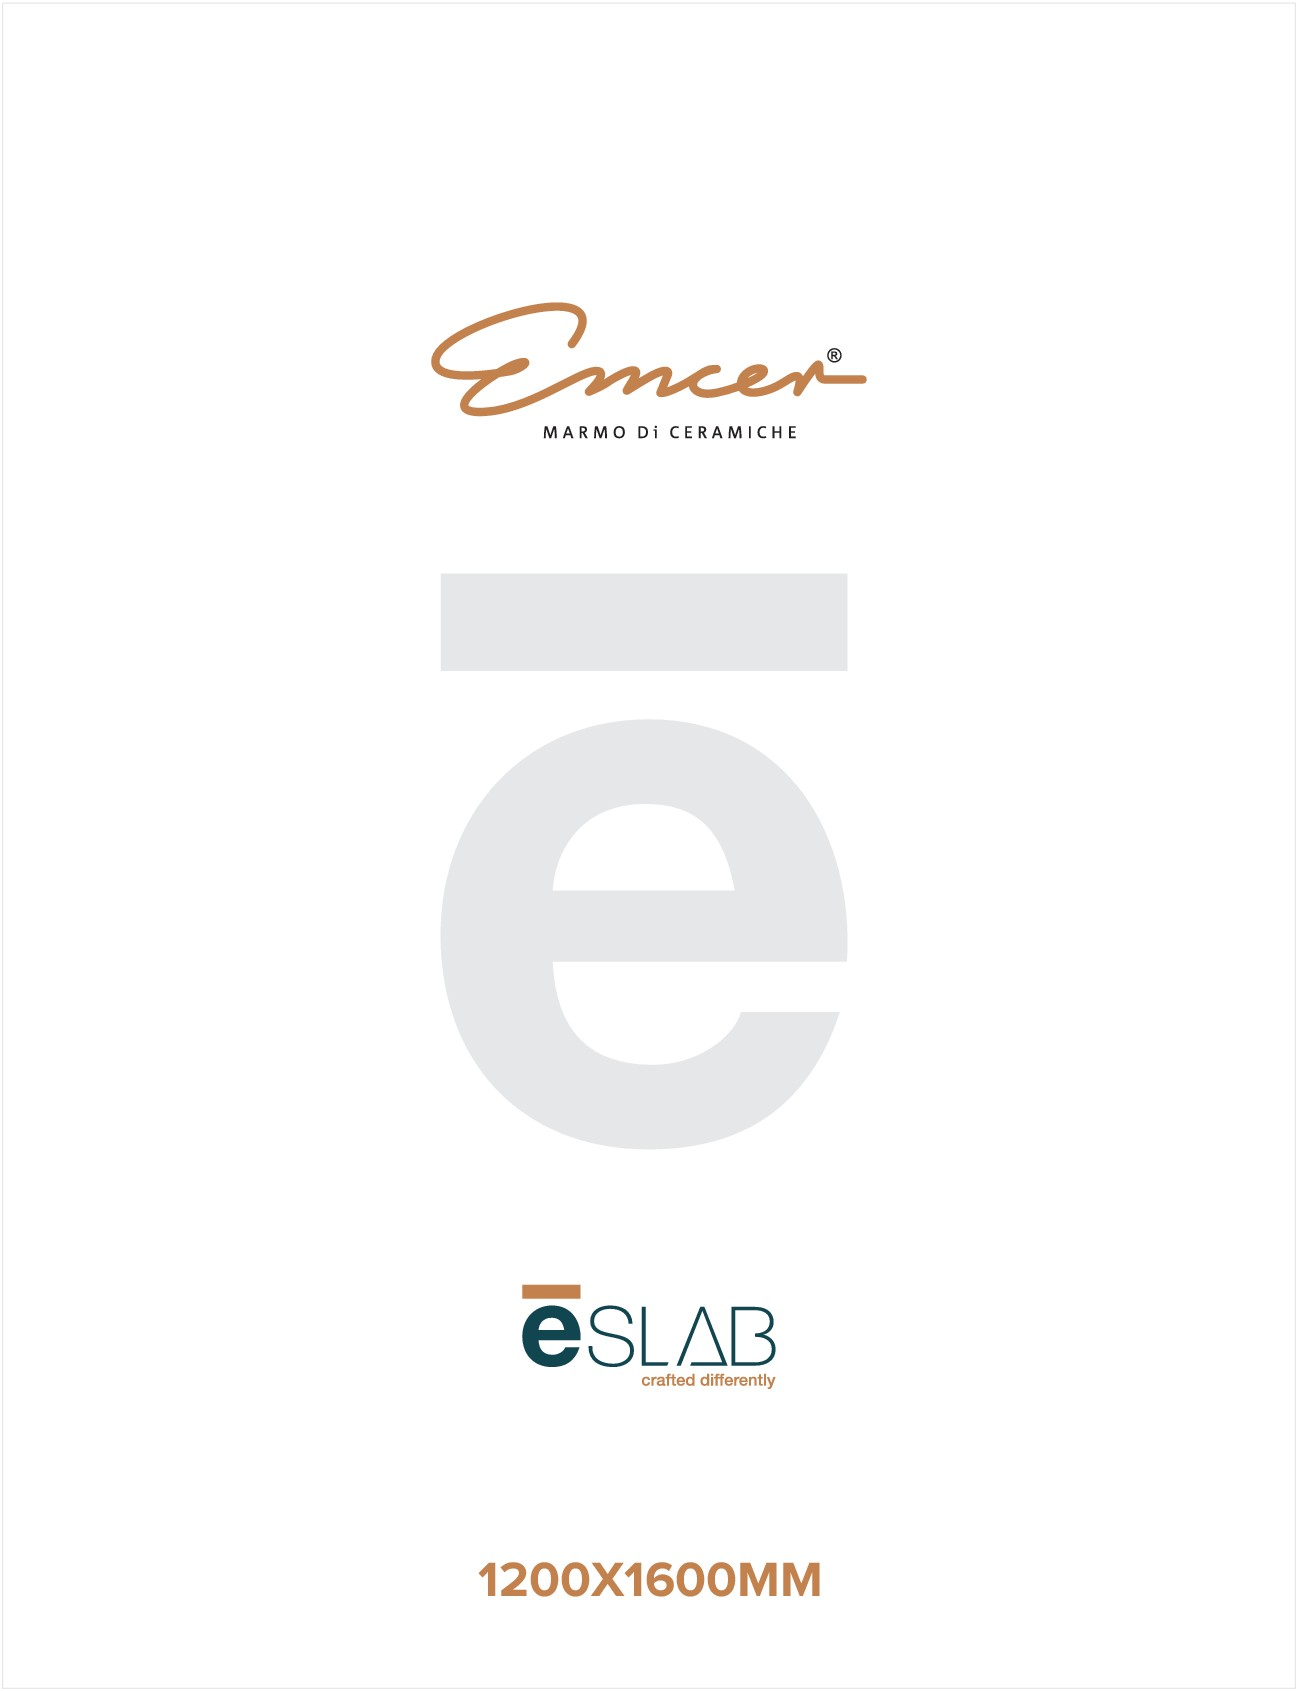 Emcer Products Catalogue